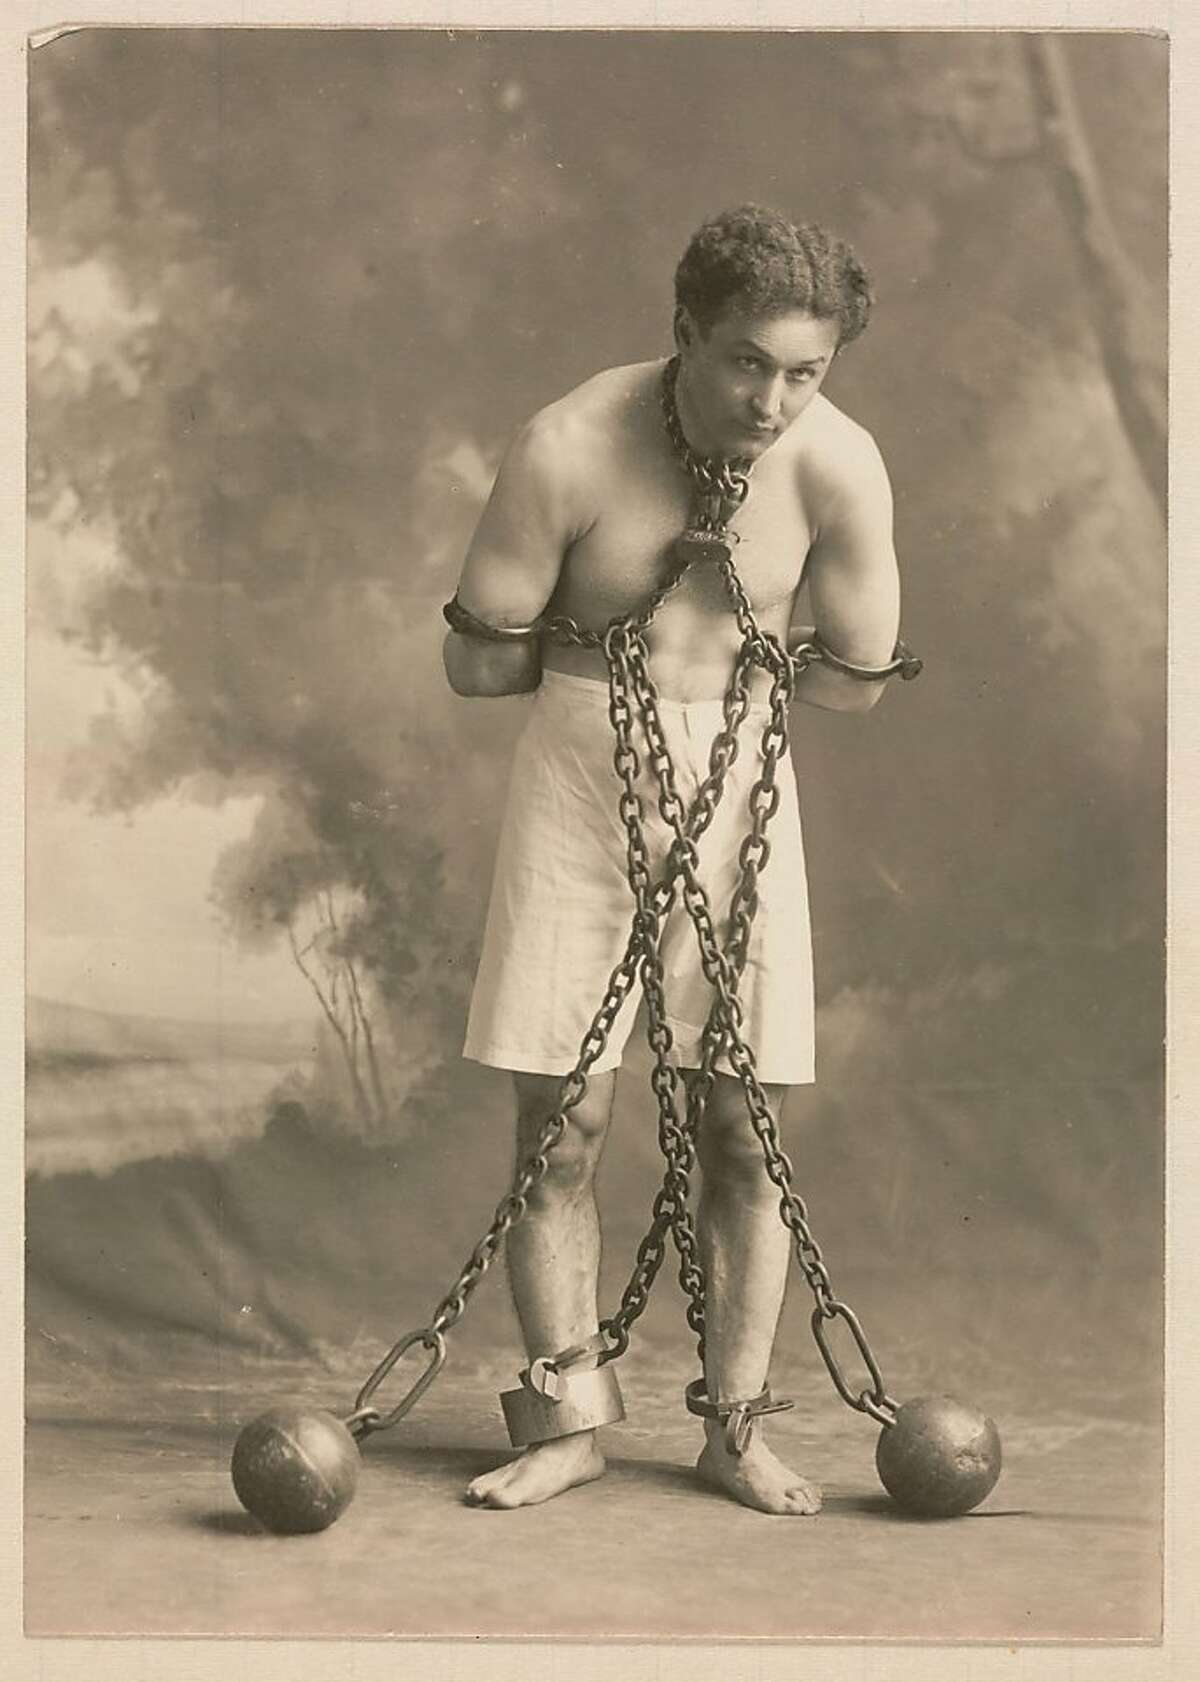 Unidentified Artist, Studio photograph of Houdini in White Trunks and Chains, c. 1905, modern photograph from historic print. Courtesy of the Harvard Theatre Collection, Houghton Library, Cambridge, Massachusetts.